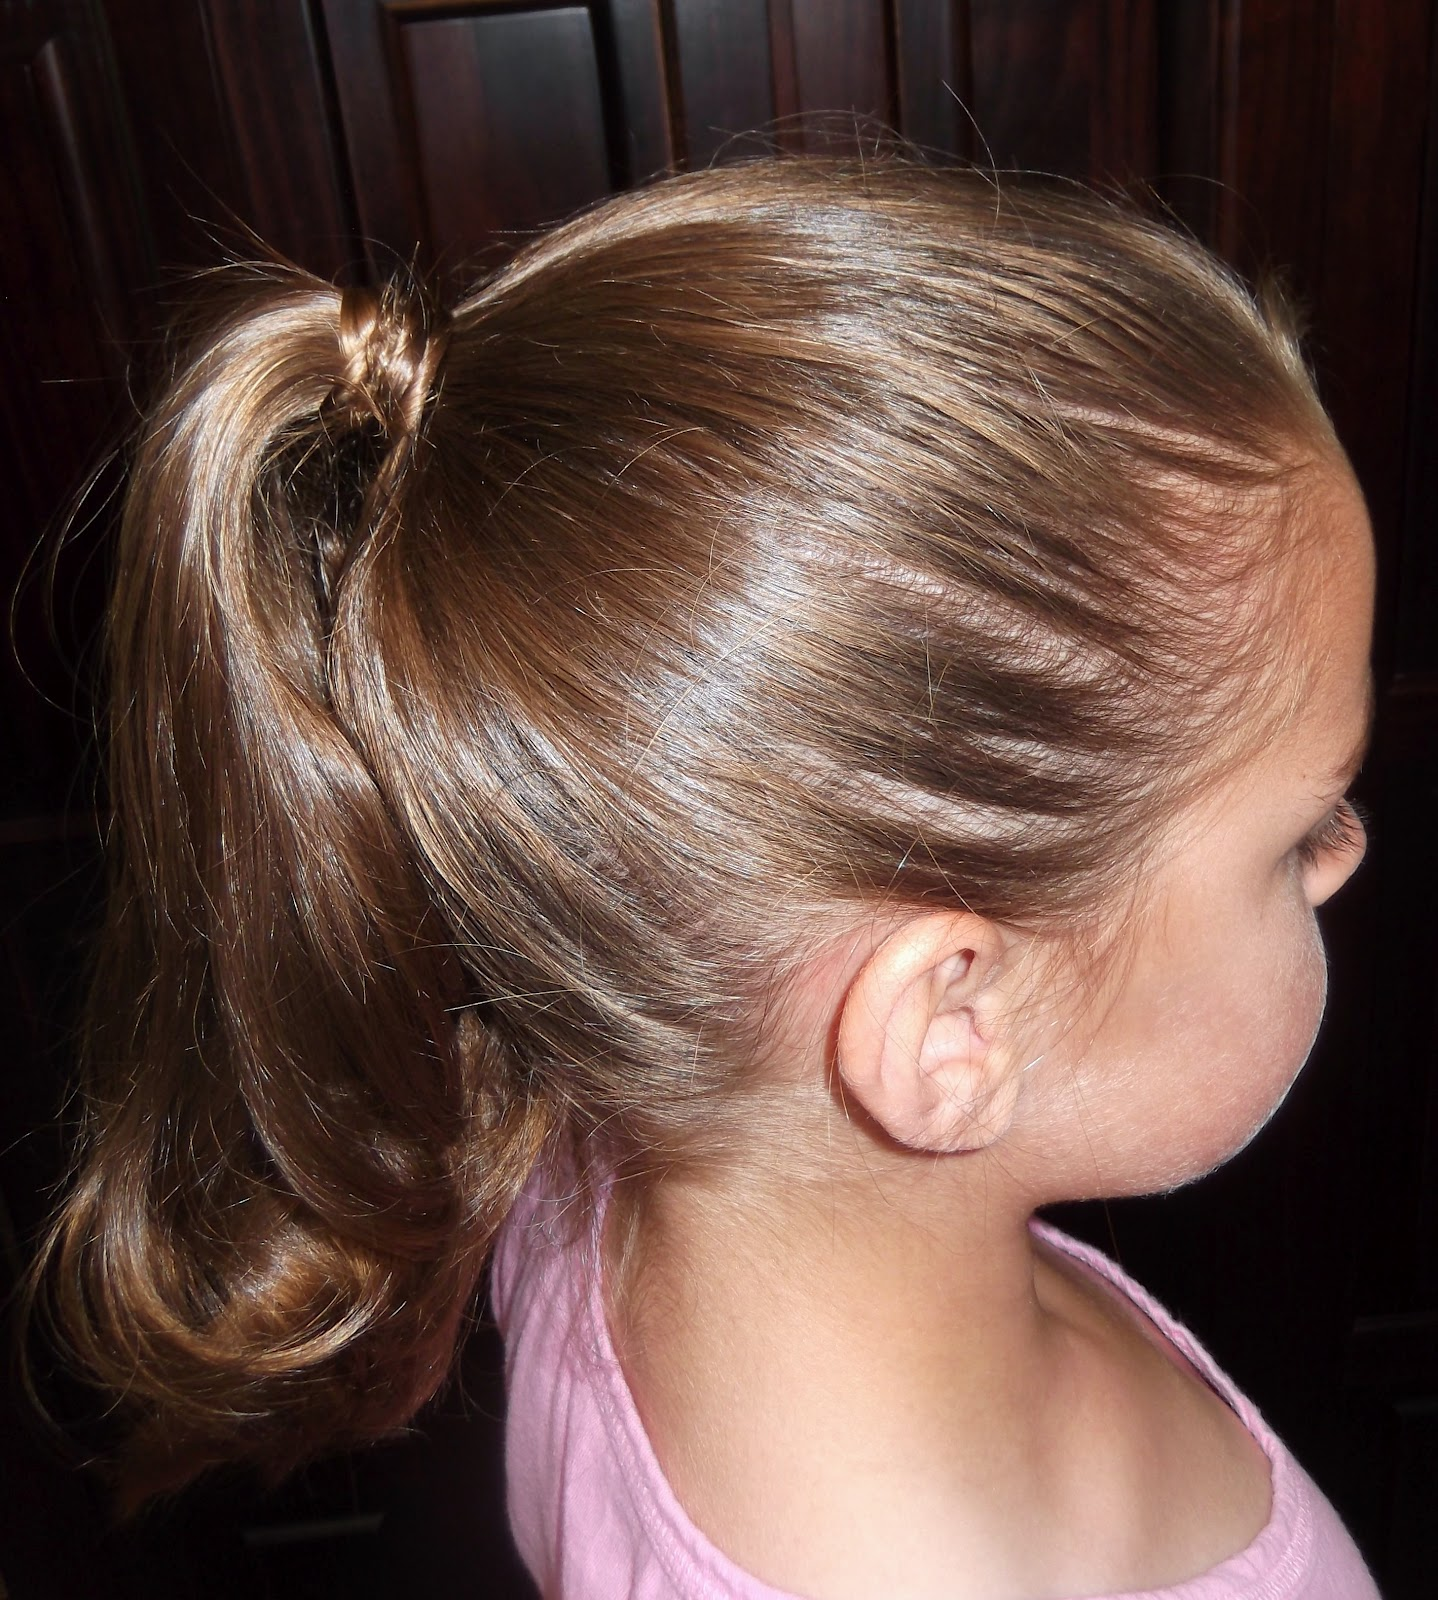 Fantastic Black Girl Hairstyles Pony Tails Little Girl Braid Ponytail Hairstyles